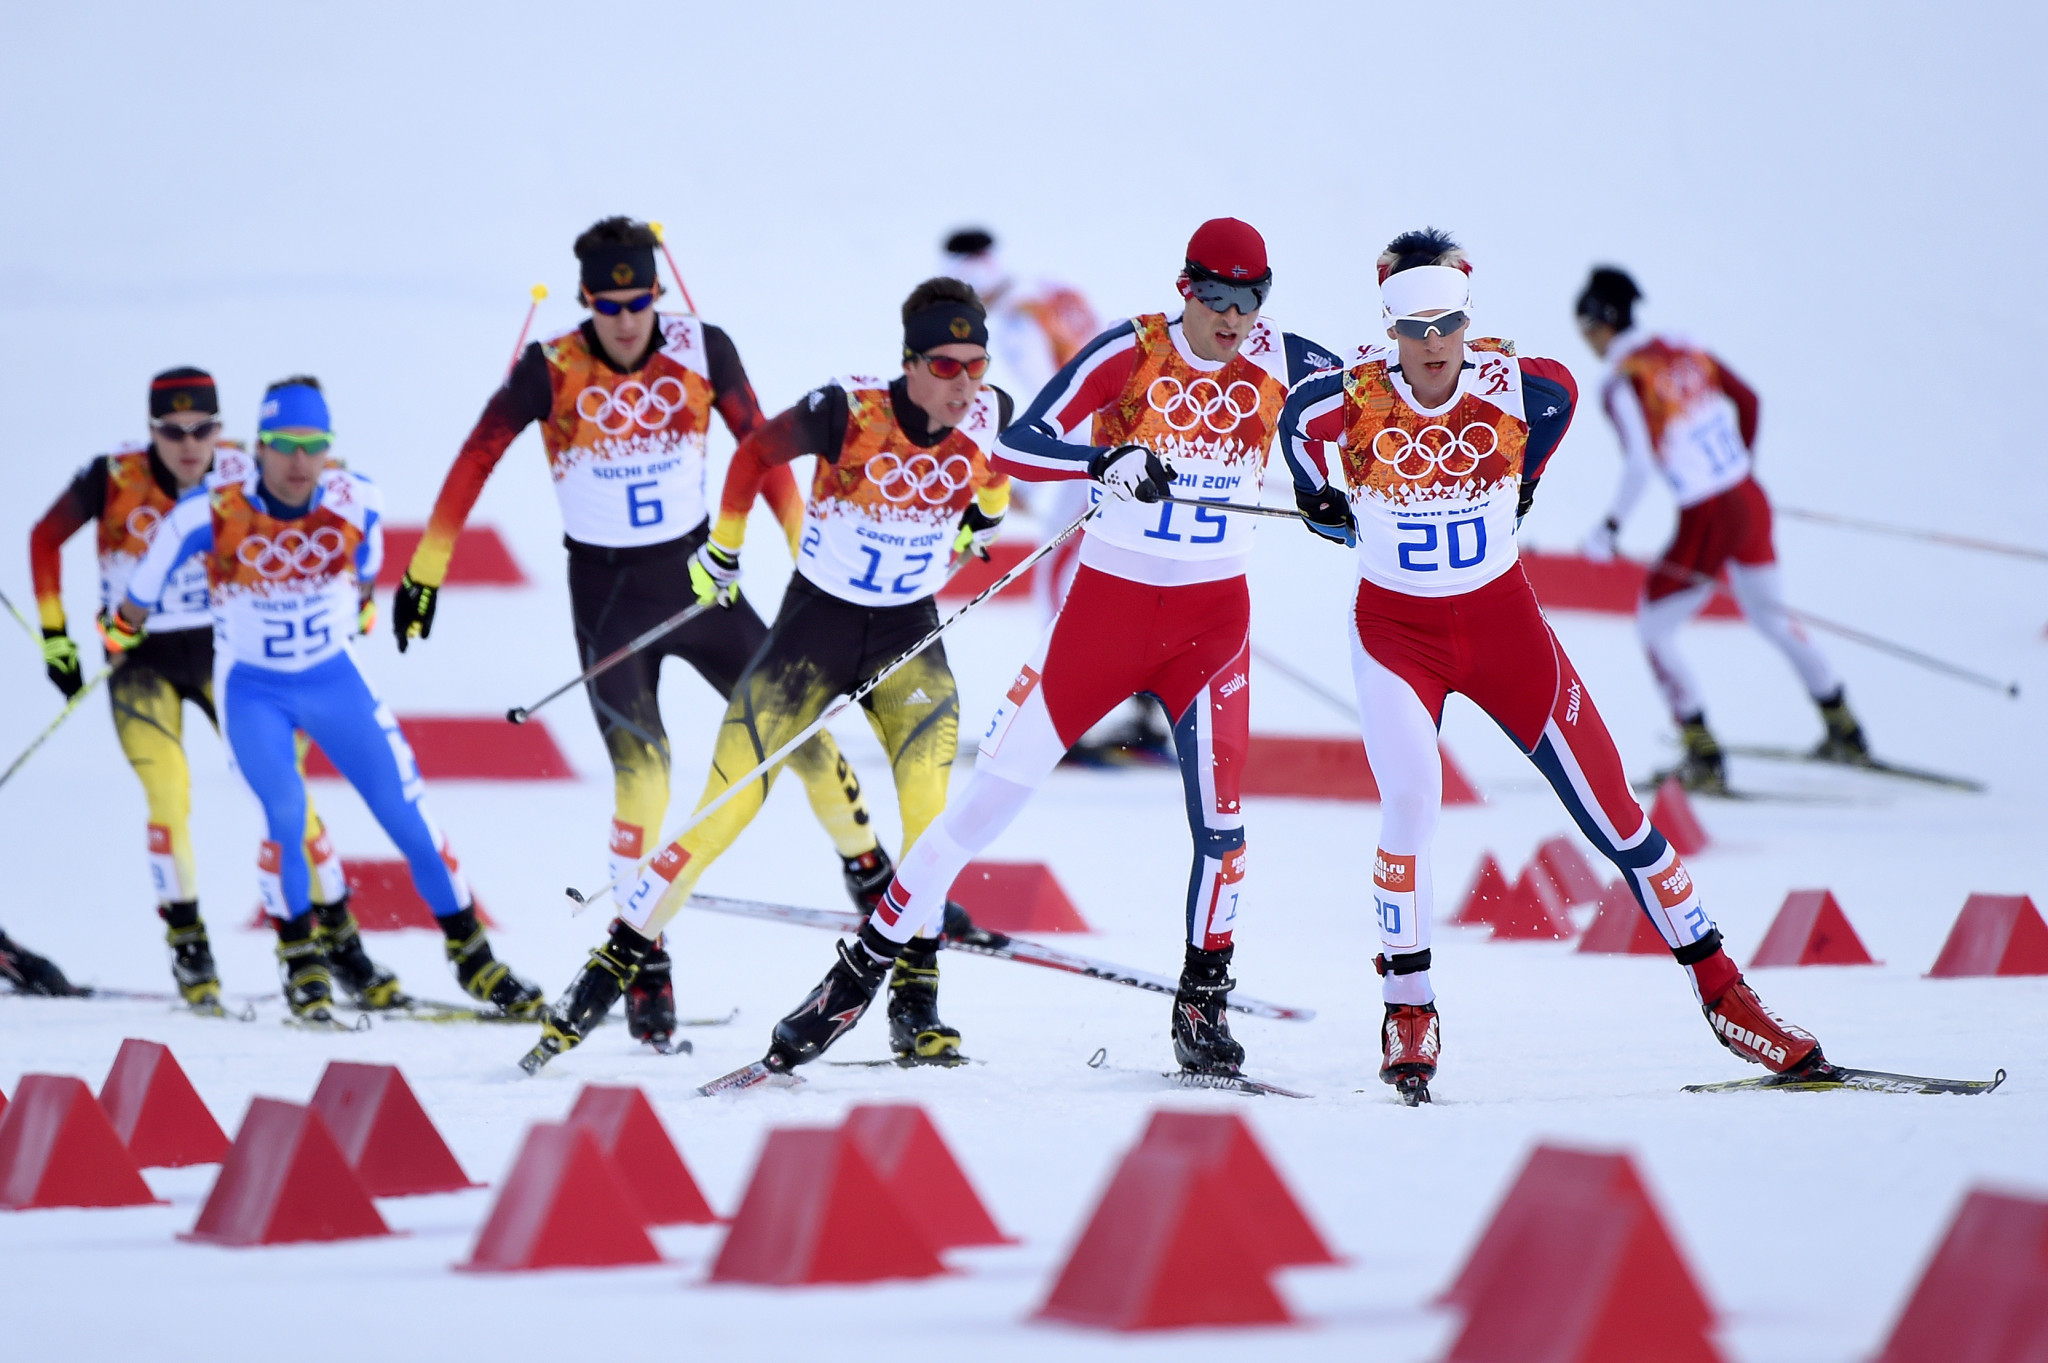 Magnus Krog, right, won two medals at the Sochi 2014 Winter Olympics ©Getty Images